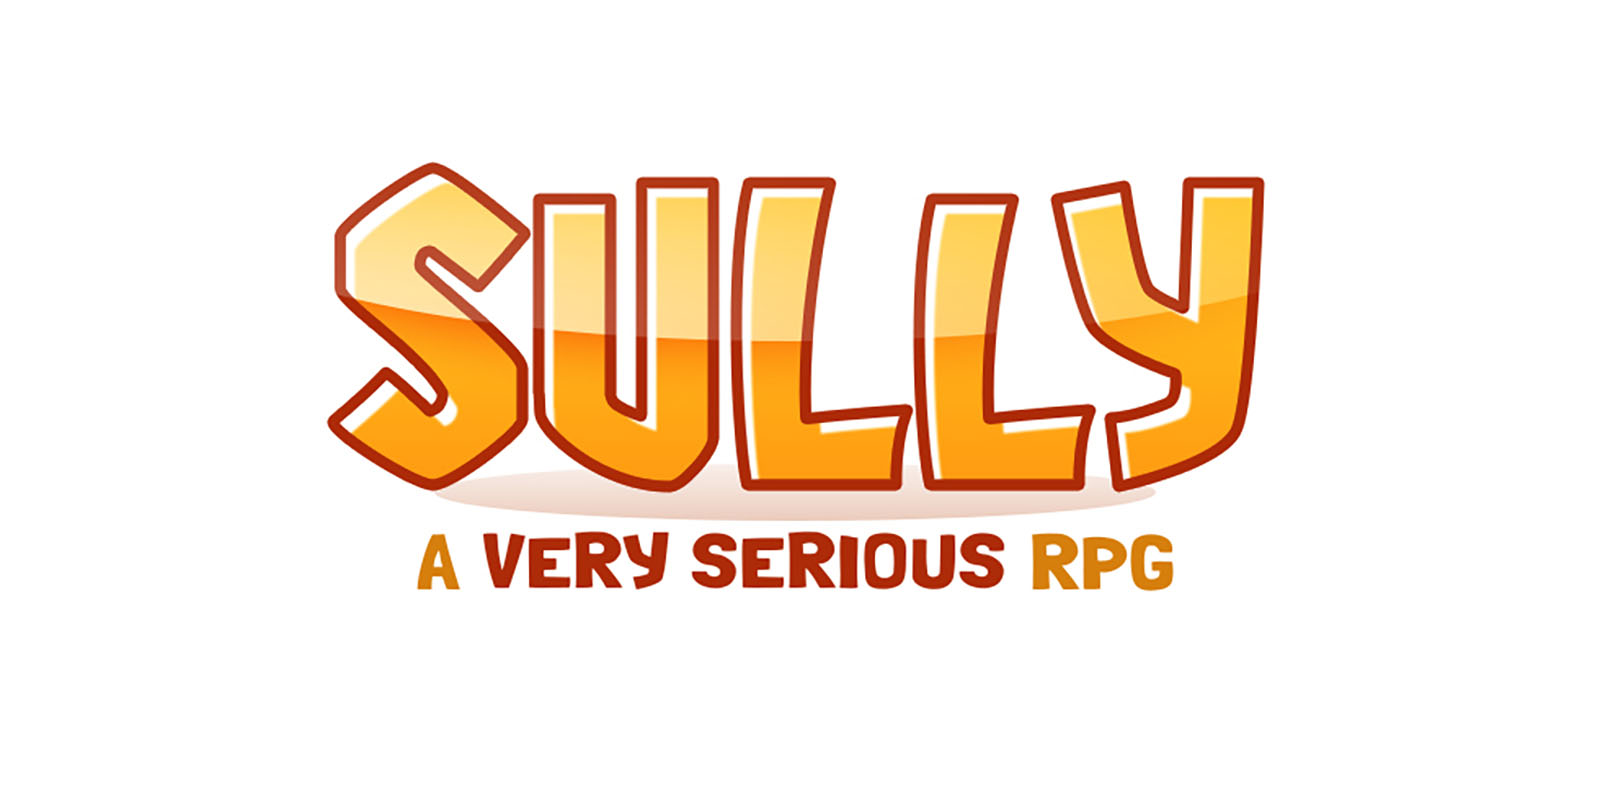 Sully: A Very Serious RPG